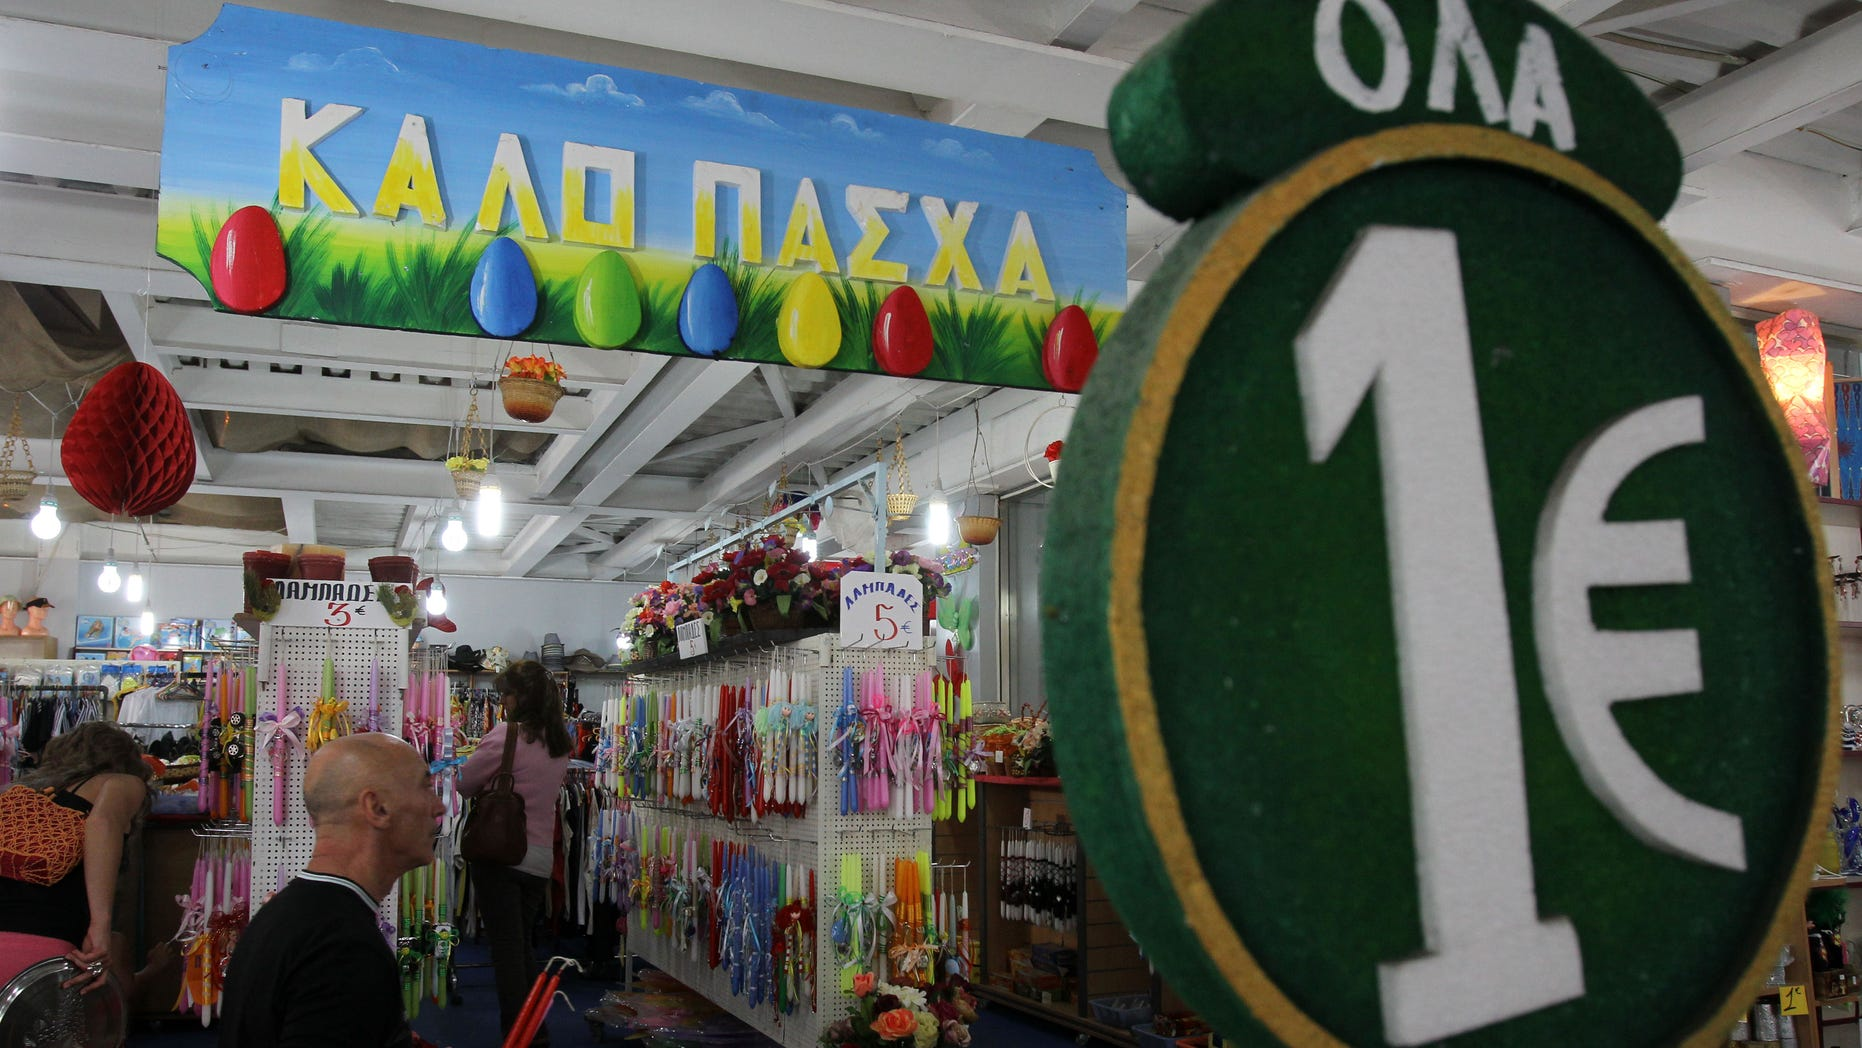 """A one-euro sign and a banner reading """"Happy Easter"""" are displayed at a discount store selling candles and other items at the start of Orthodox Holy Week, in Athens, Monday, April 29, 2013. Orthodox Christians around the world celebrate Easter on Sunday, May 5. Retailers and travel agents booking domestic trips are expecting slower sales over the Easter holidays, with a continued recession expected to see Greece's crisis-hit economy contract a further 4.25 percent this year. (AP Photo/Thanassis Stavrakis)"""